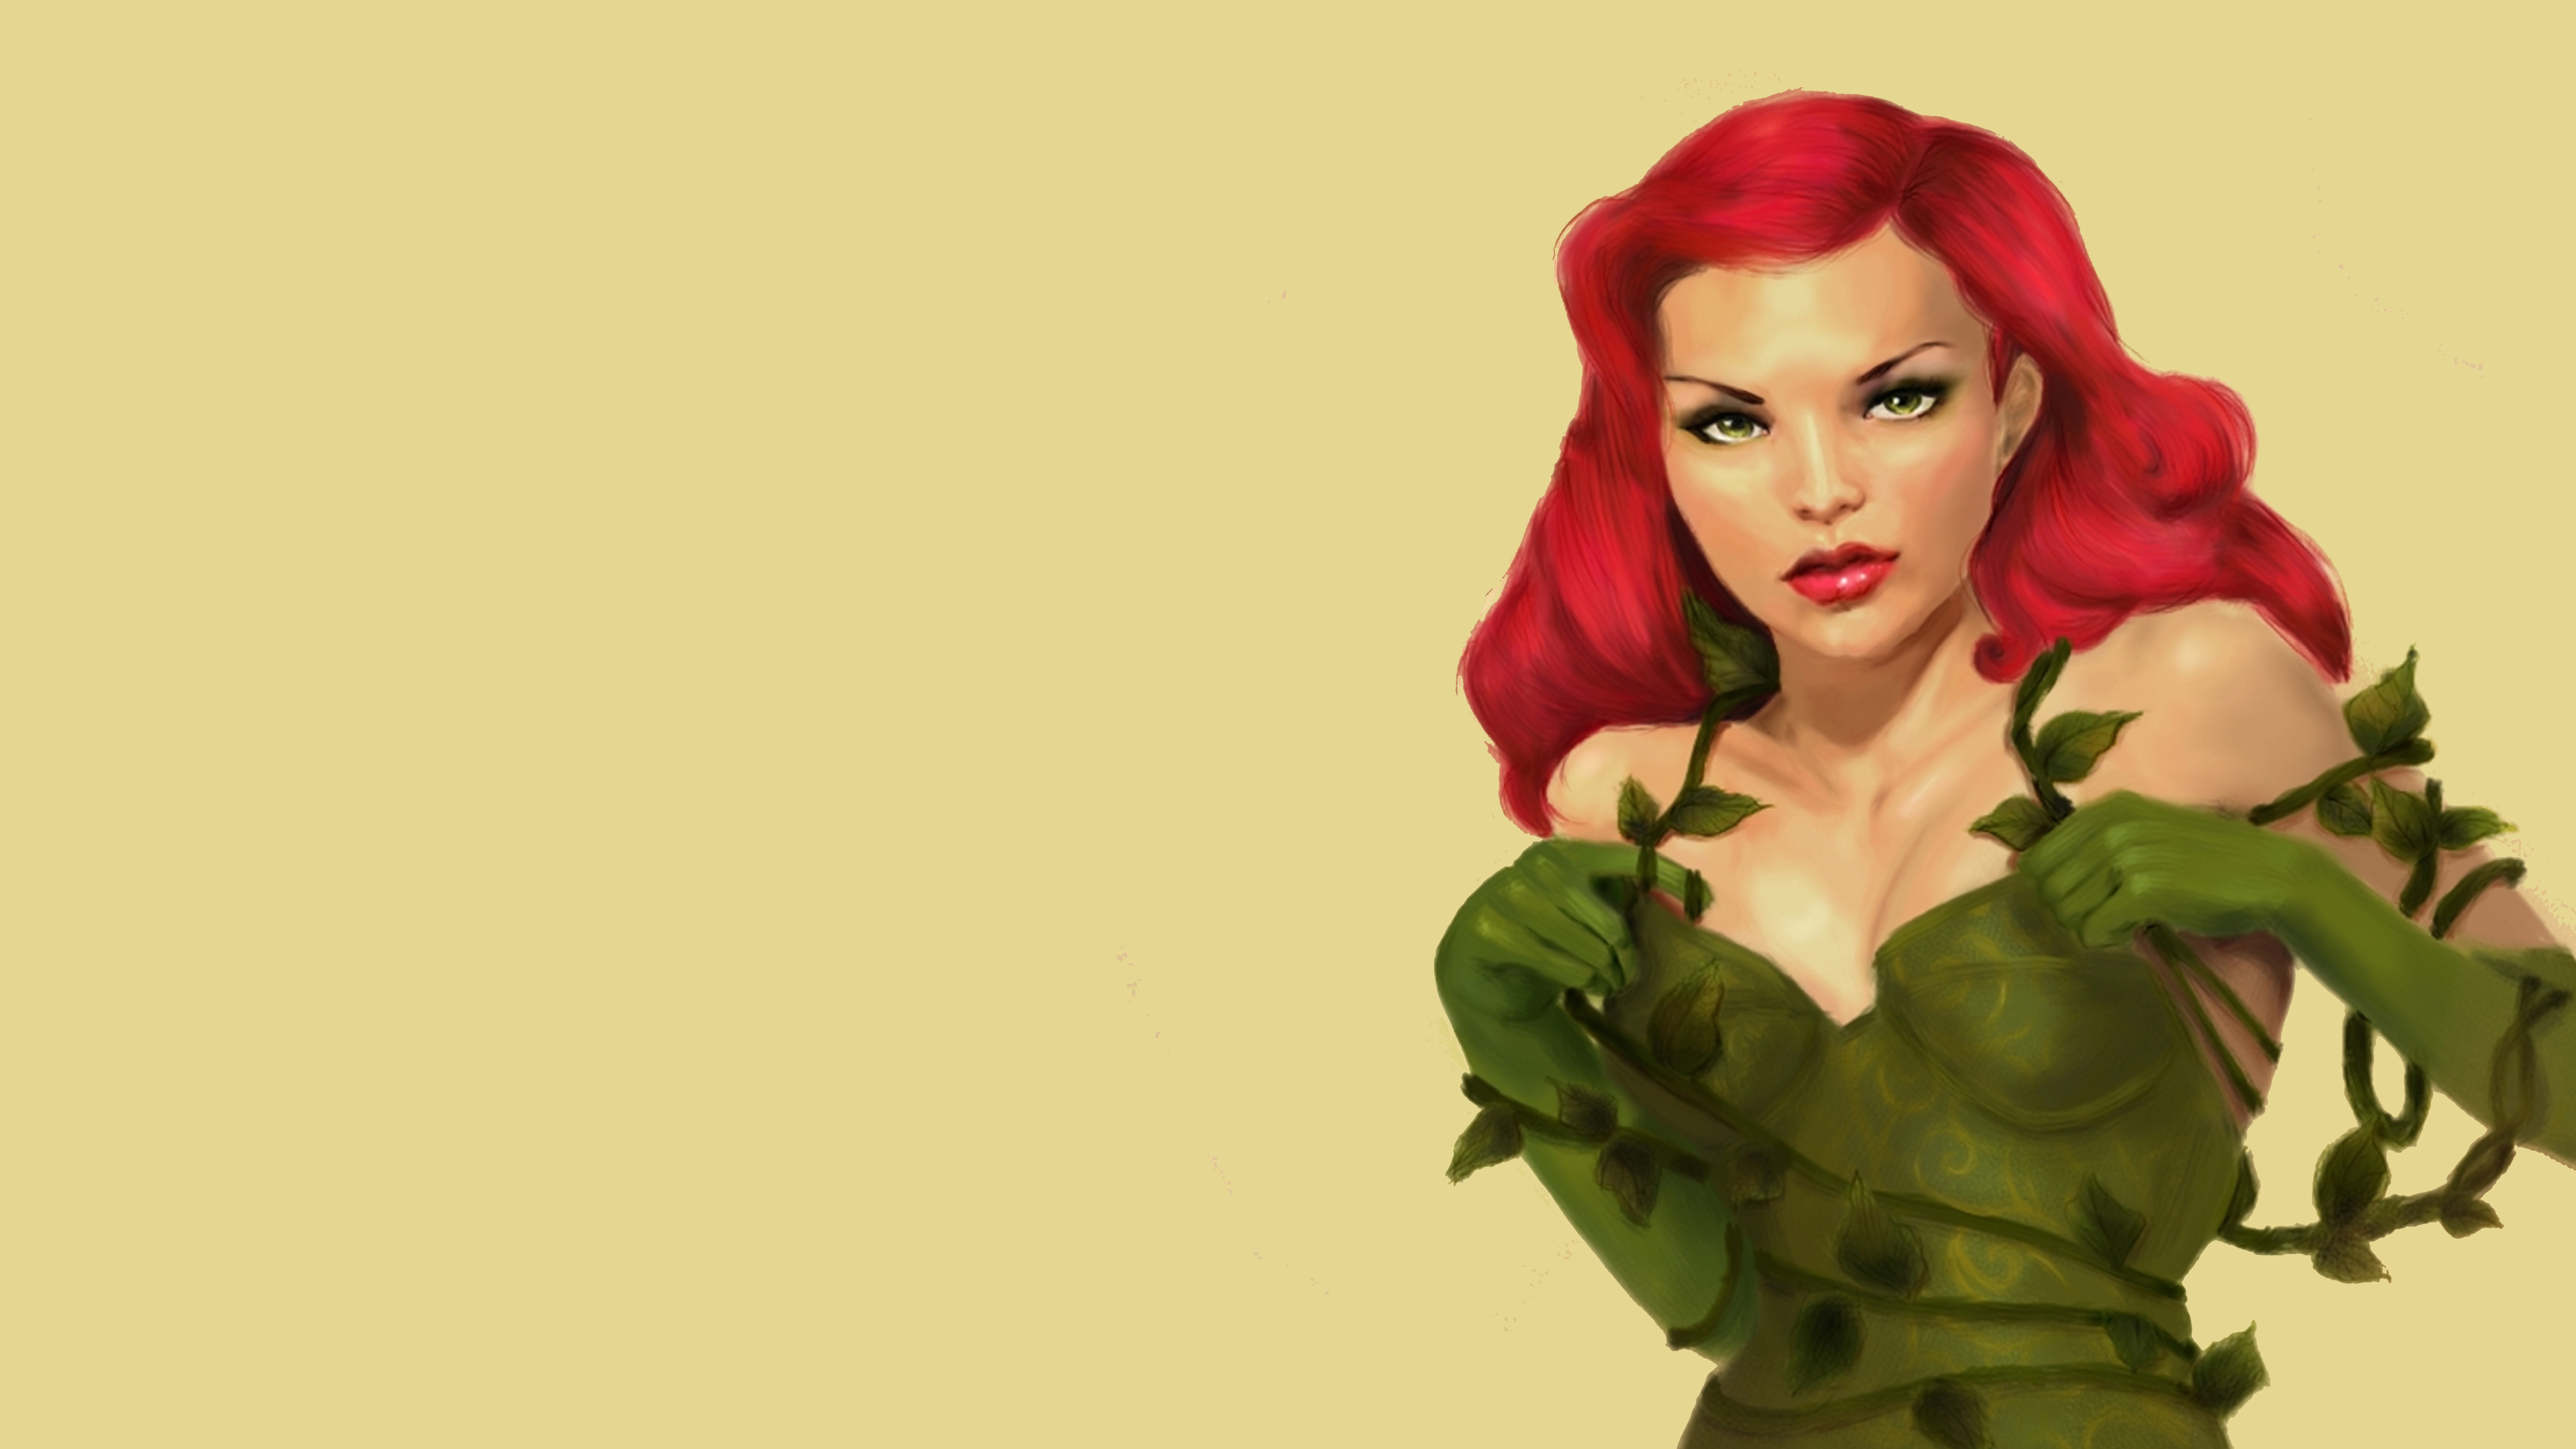 poison ivy wallpapers pictures images